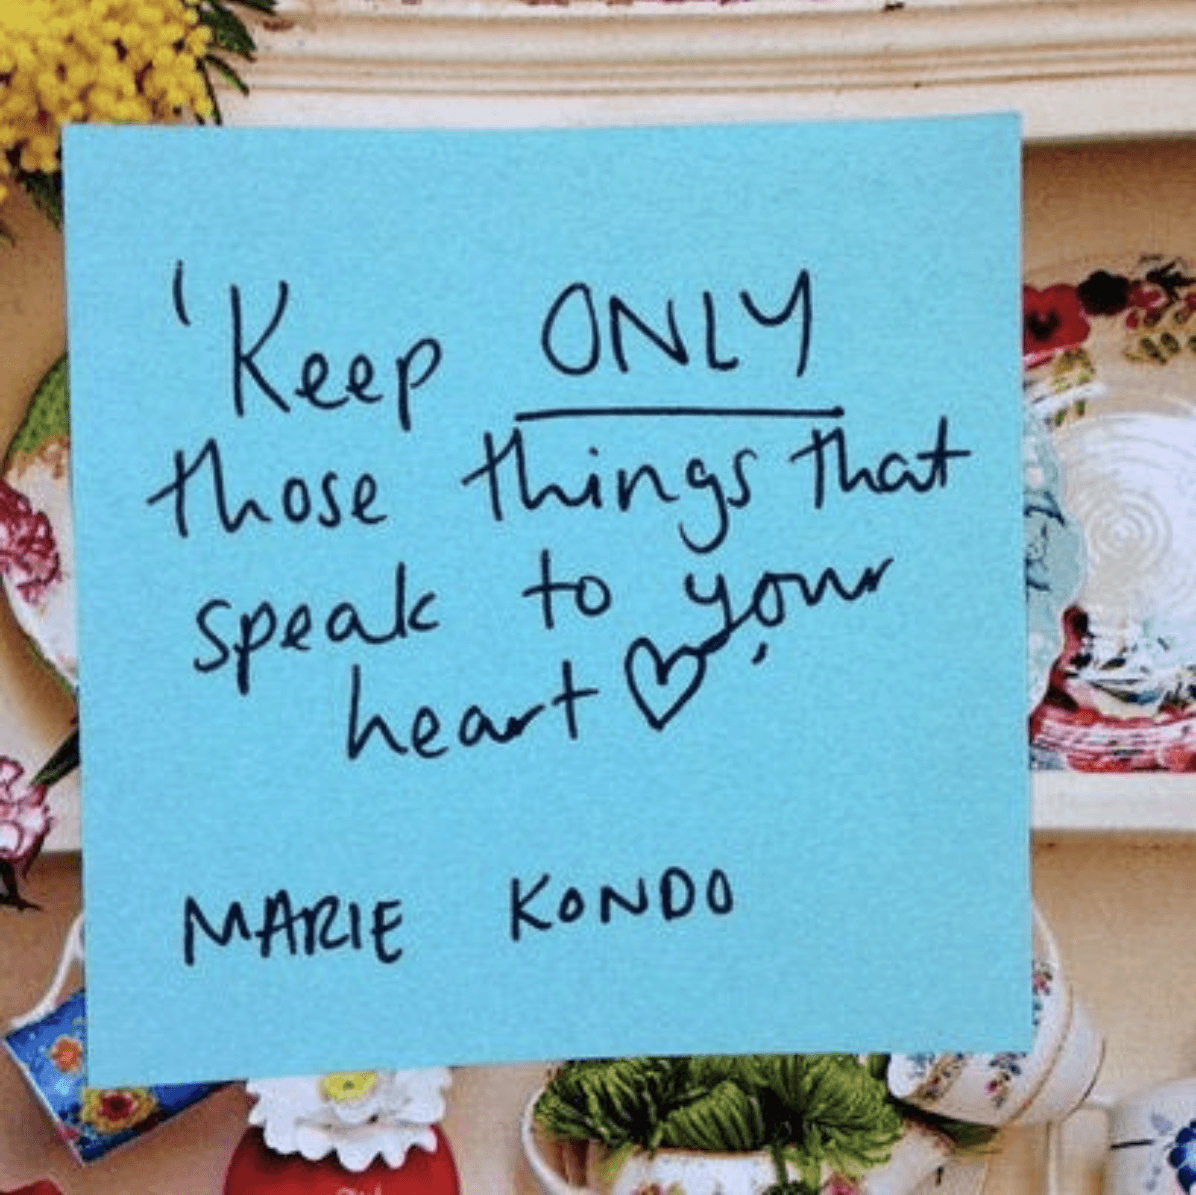 Speak to your heart